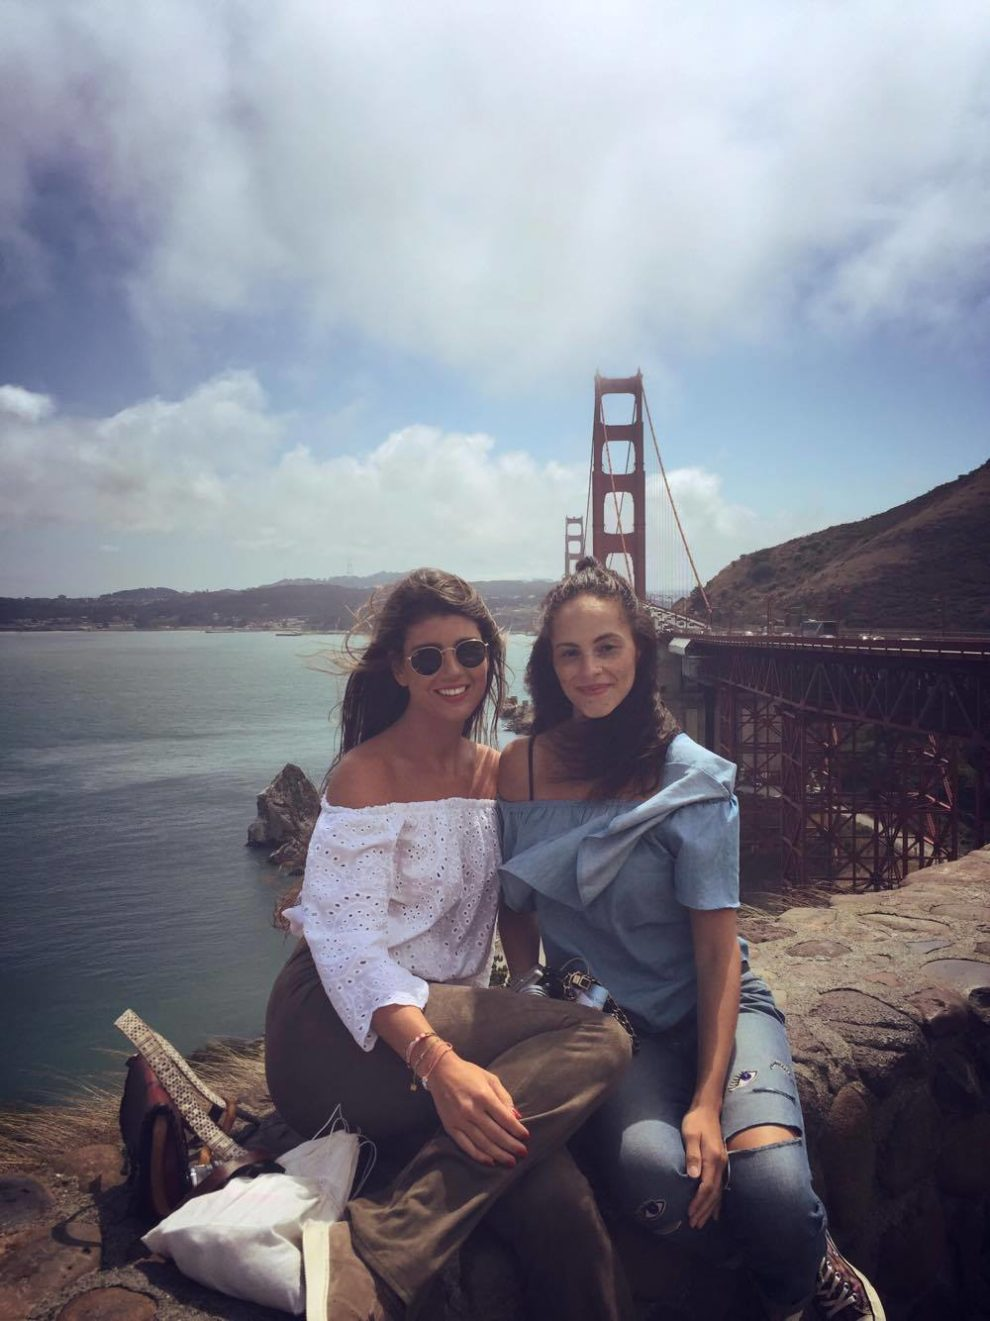 DE VIJF TIPS VOOR EEN PERFECTE USA WEST COAST ROADTRIP SAN FRANCISCO AMANDINE HACH LES BERLINETTES